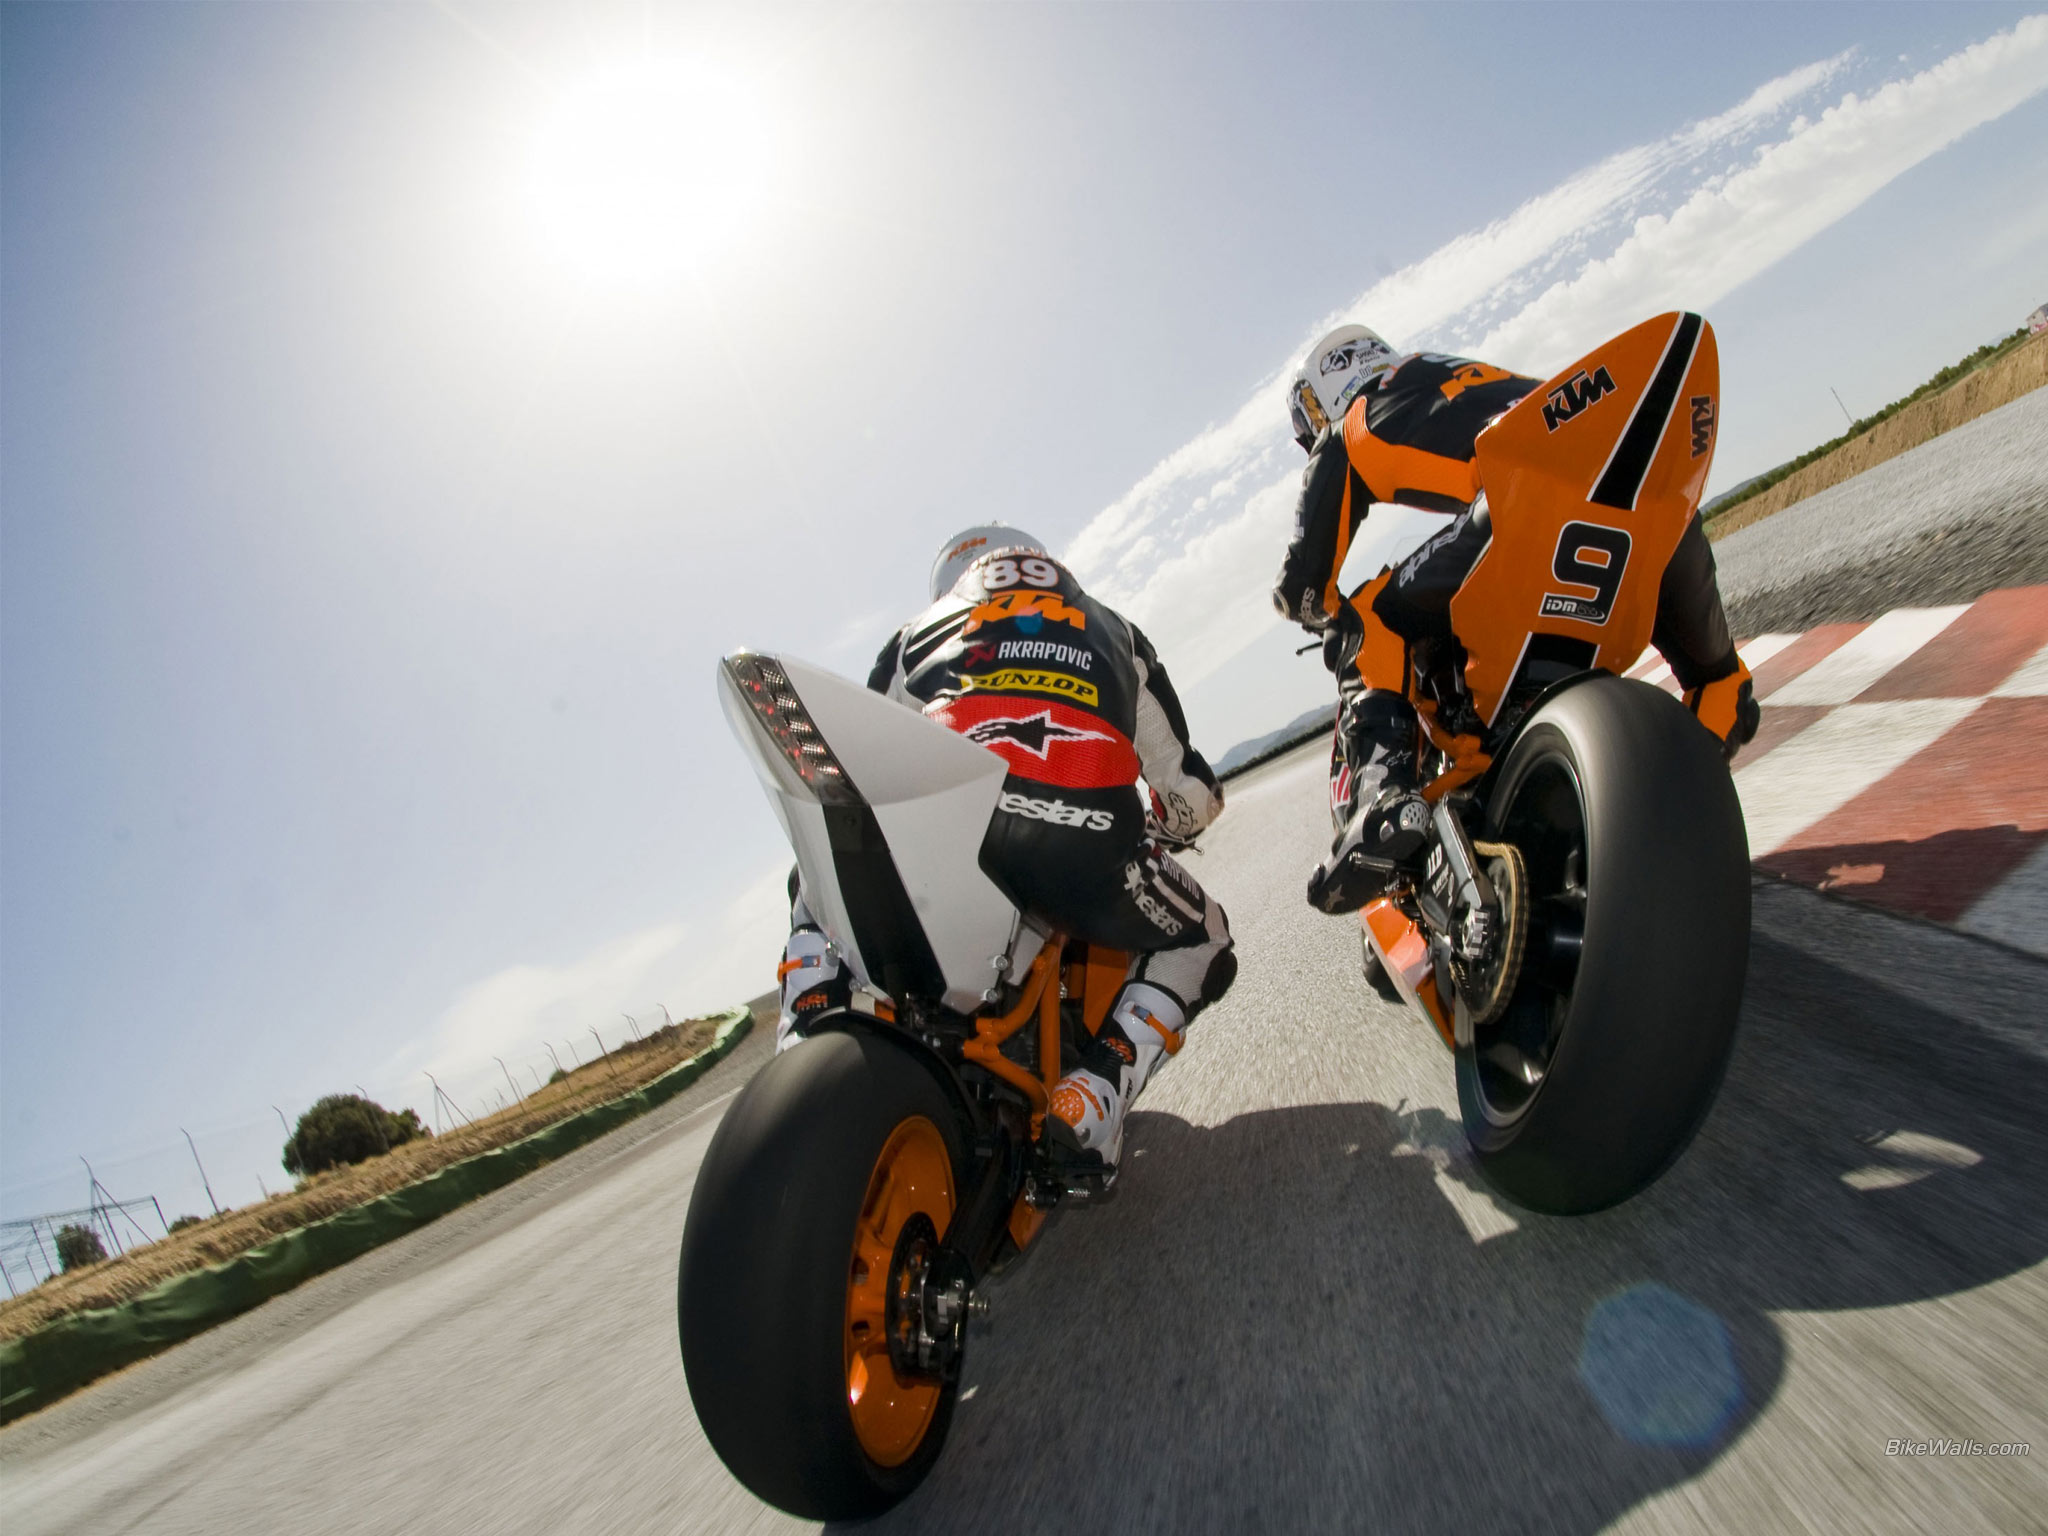 2048x1536 - KTM RC8 Wallpapers 2